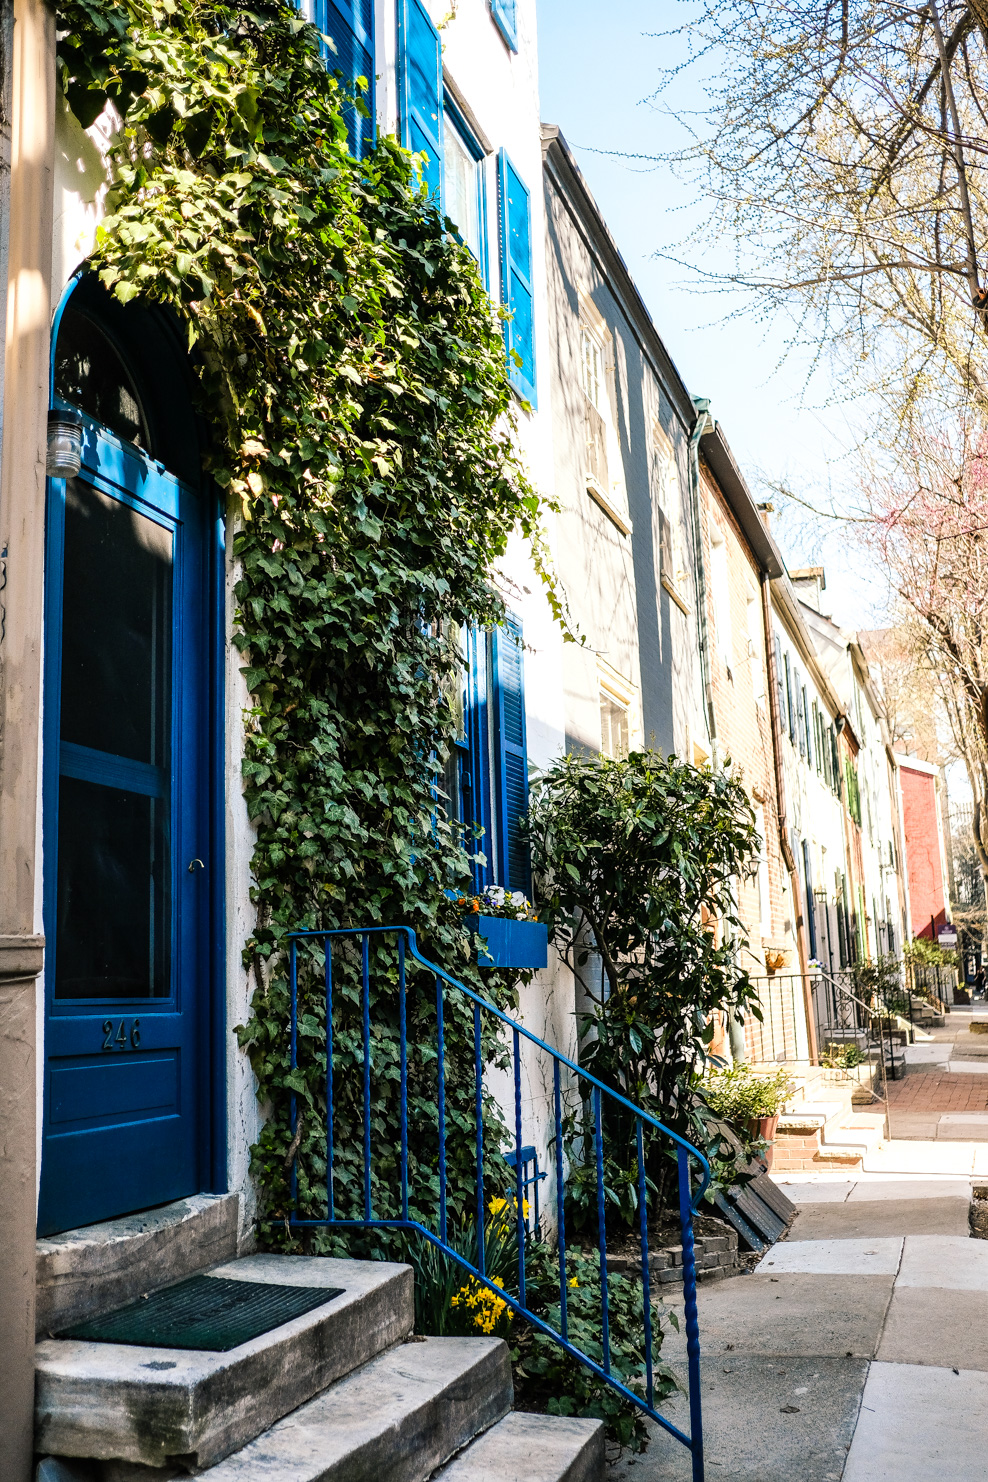 Lifestyle Blogger Chocolate and Lace shares her photo diary of Philadelphia in the Spring.